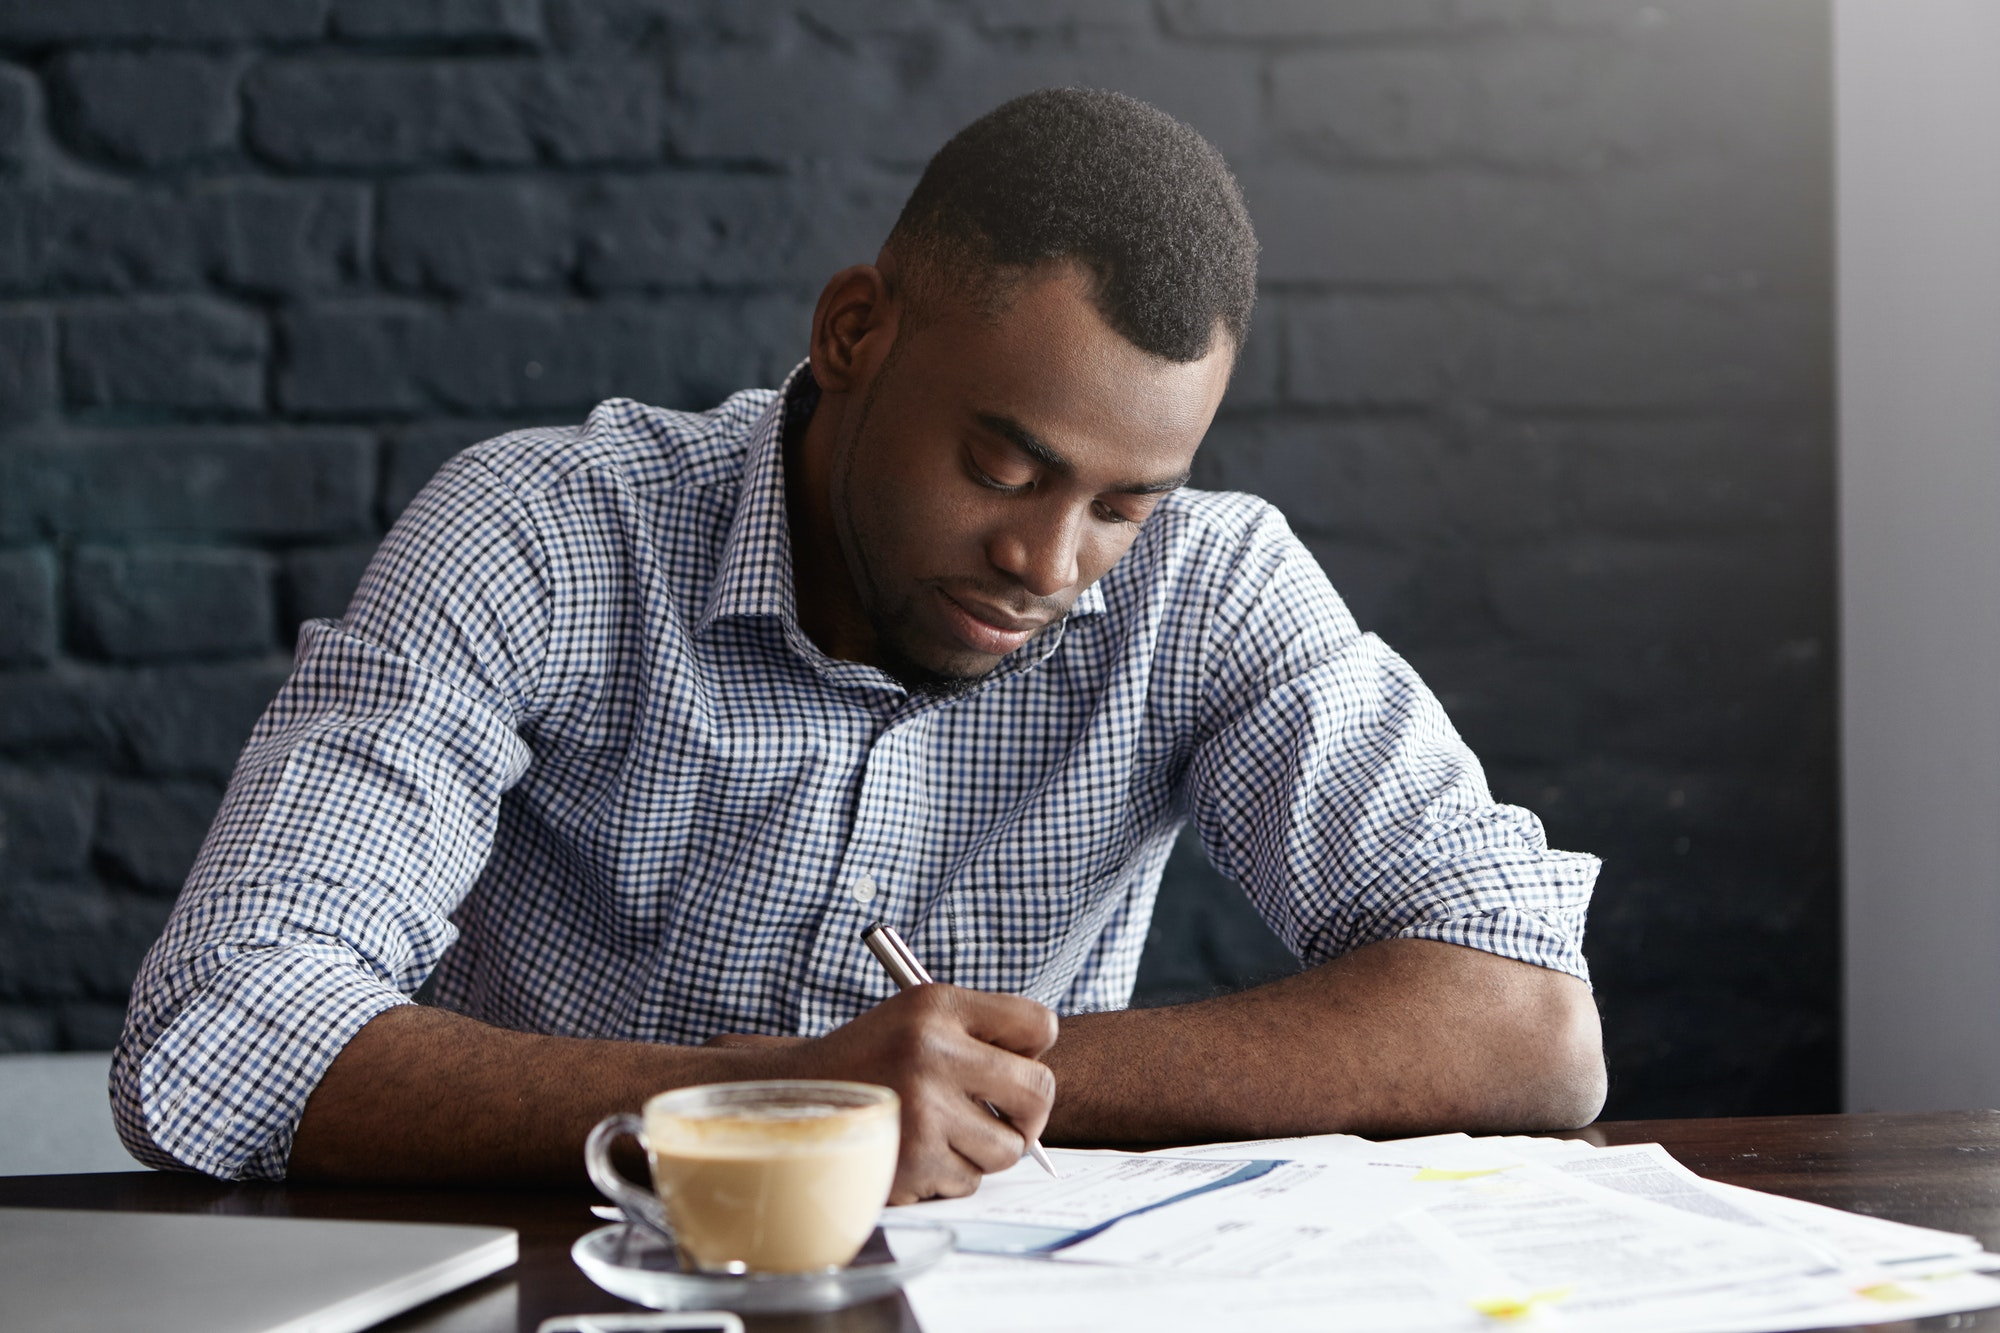 Hardworking young African office worker handwriting, filling in papers while doing accounting, revie